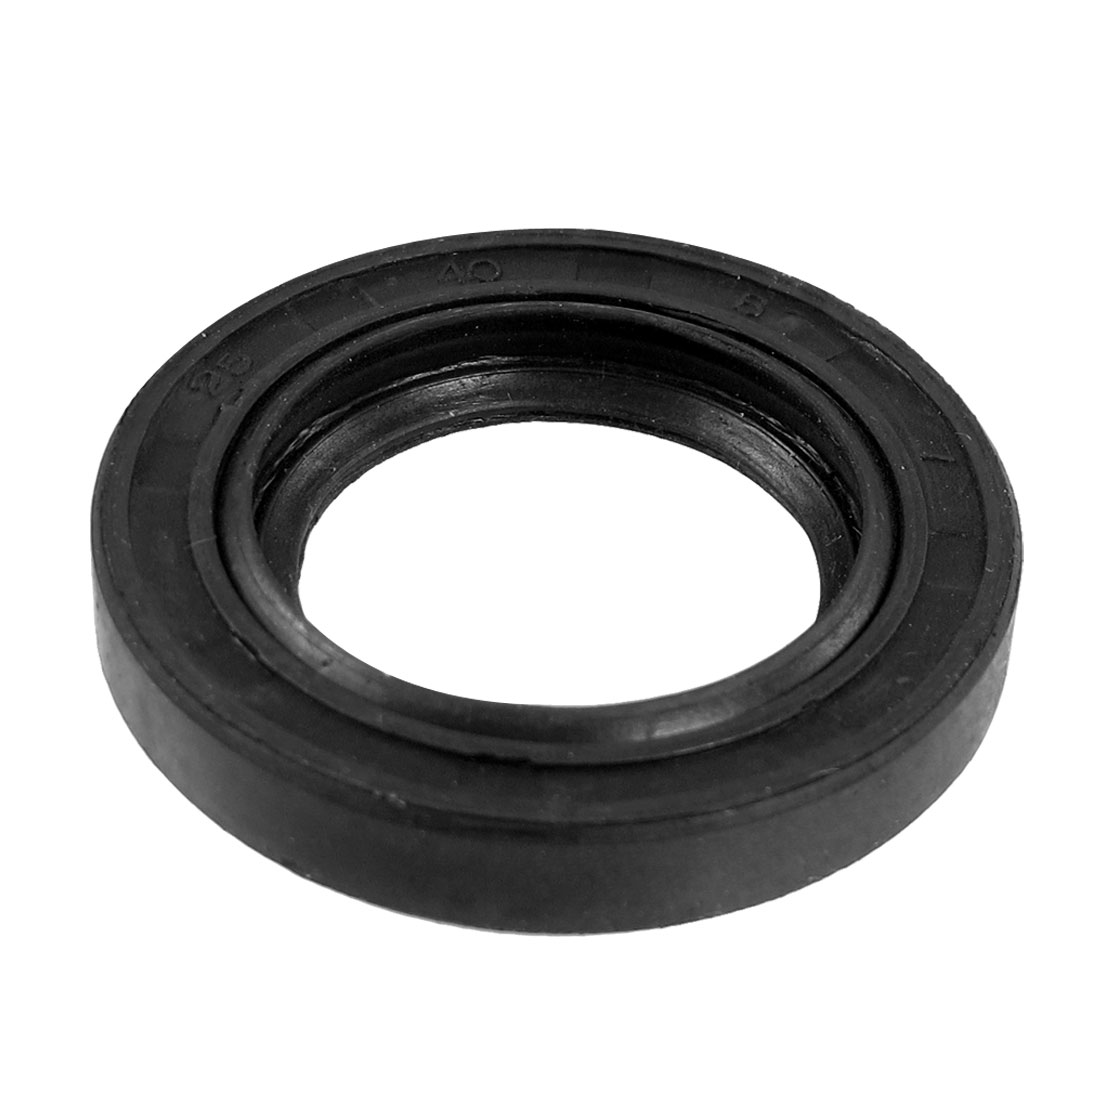 Black Nitrile Rubber Dual Lips Oil Shaft Seal TC 25mm x 40mm x 7mm